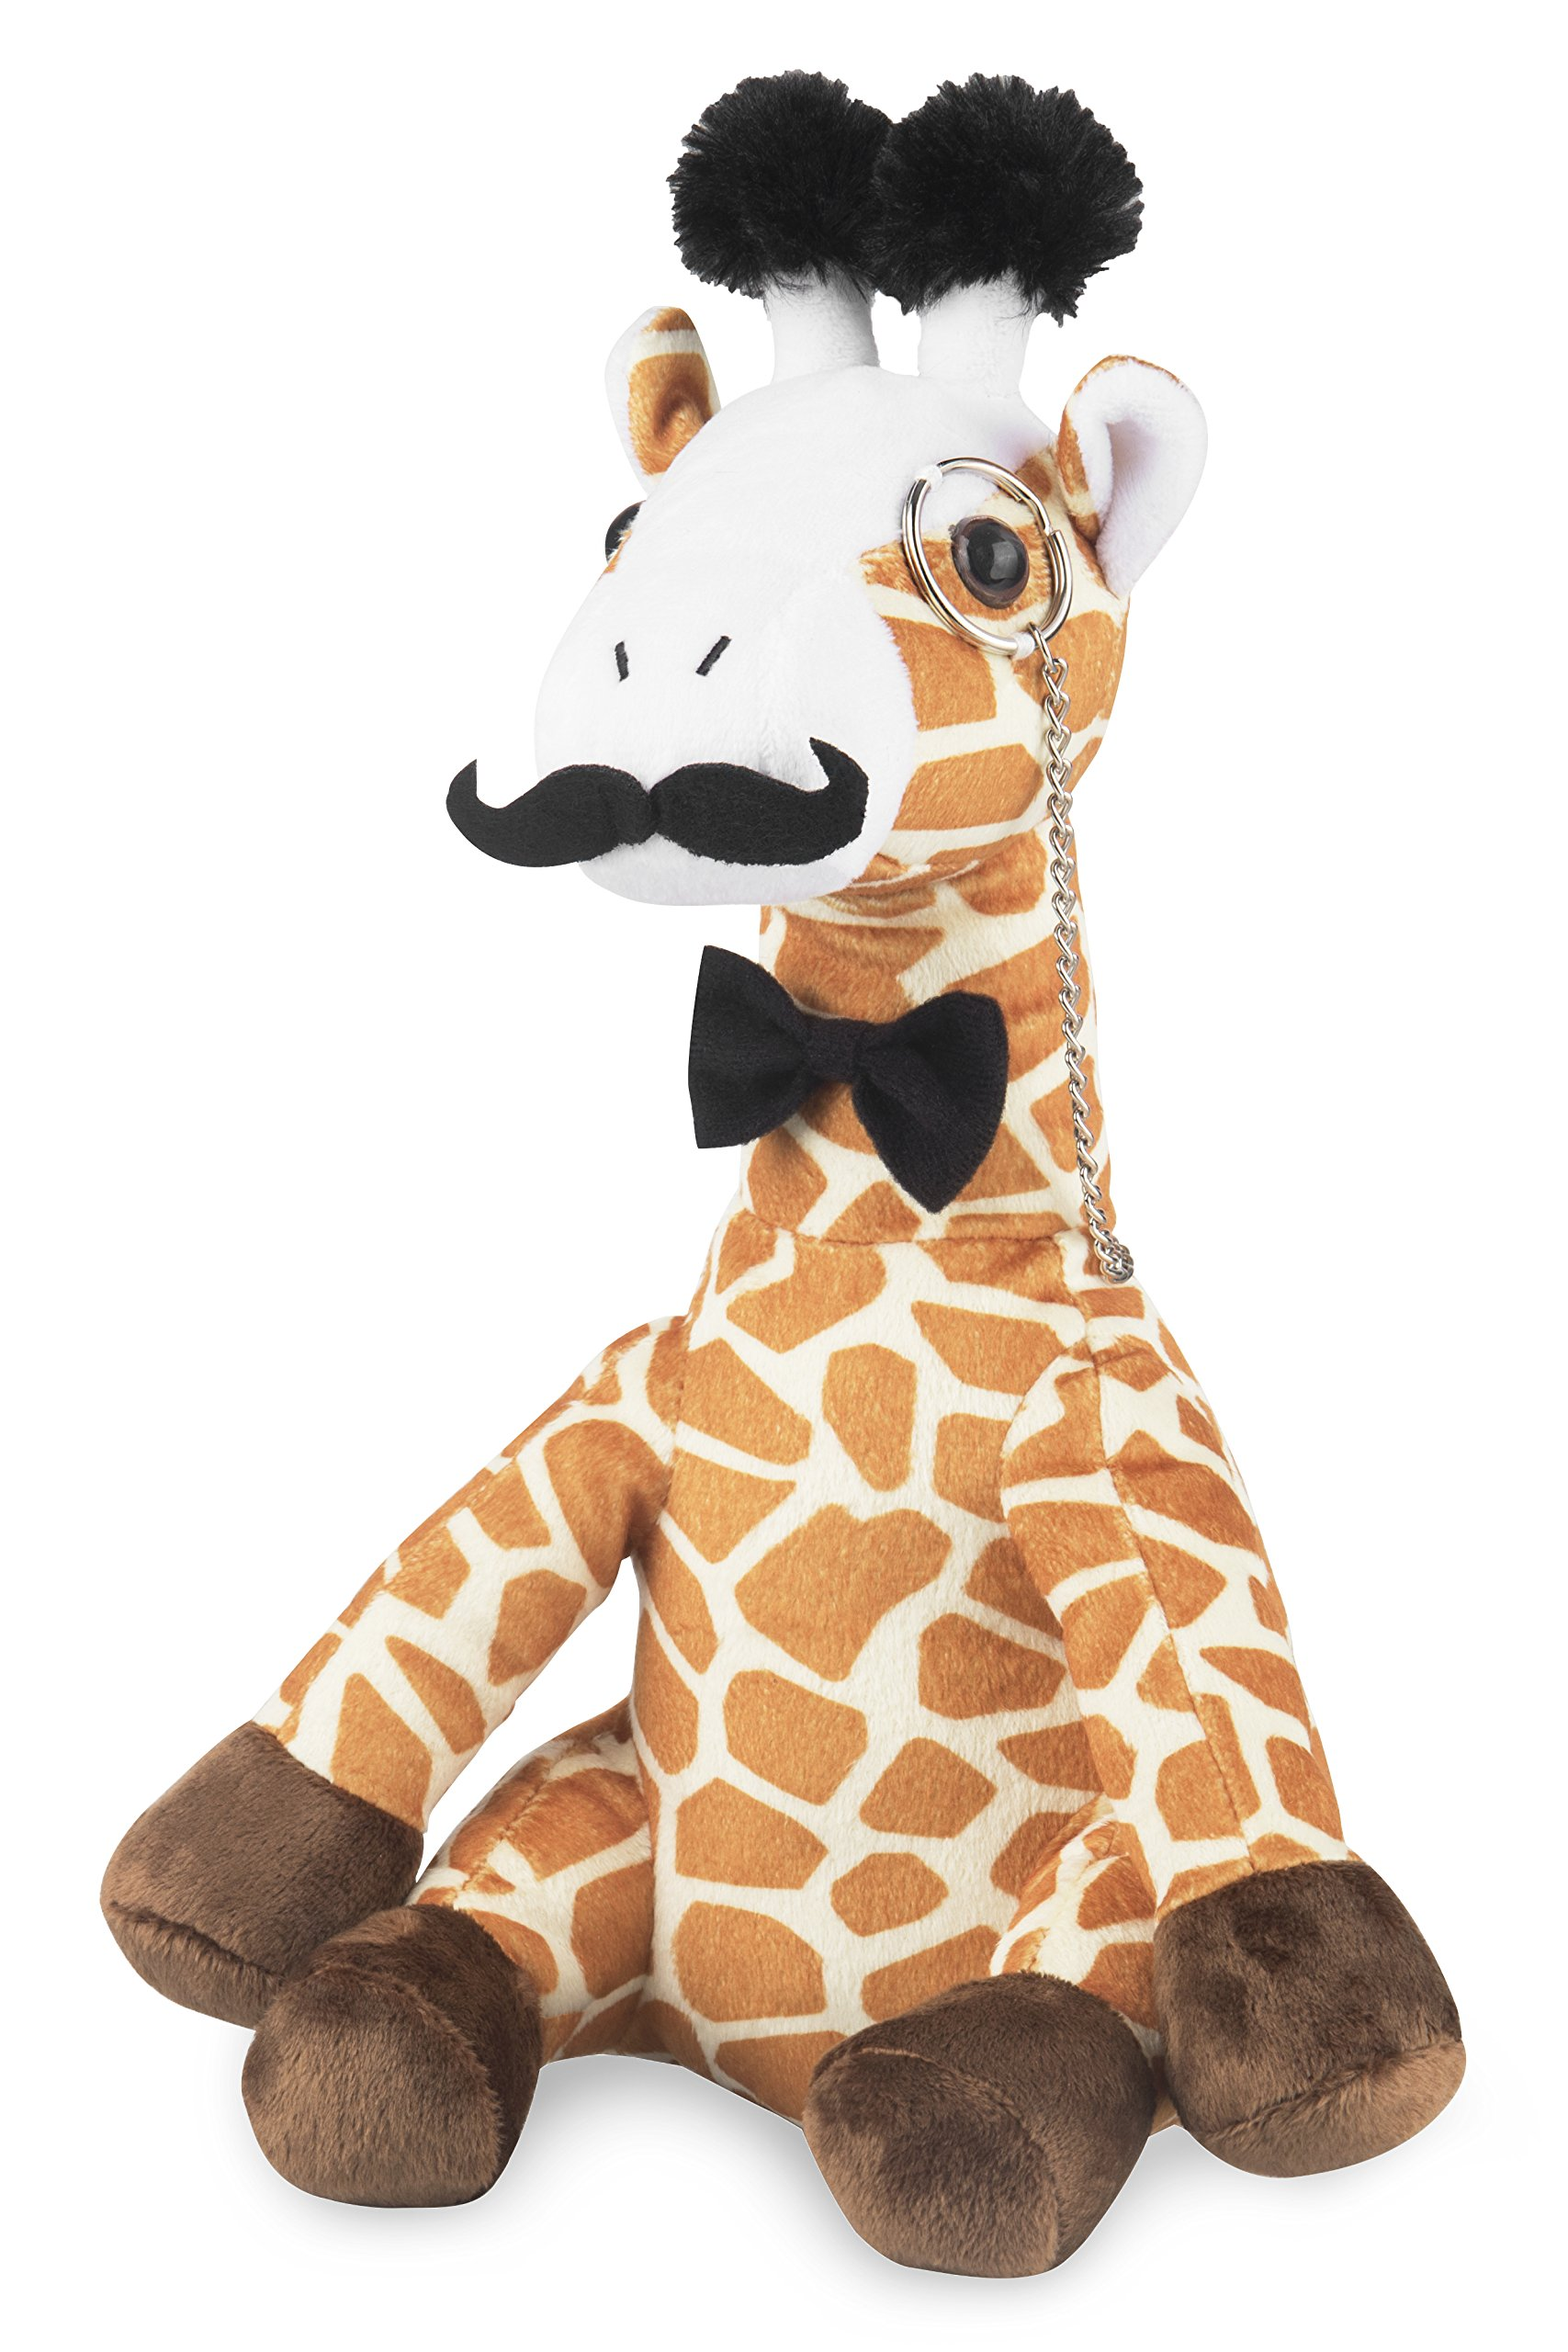 Fancy Giraffe Plush Stuffed Animals: Cute & Funny Small Plushie Toy Animal with Mustache, Monocle & Bowtie for Babies, Children or Adults - Party Gift or Bedtime Toys for Boys & Girls - 14 Inches Tall by Kimler